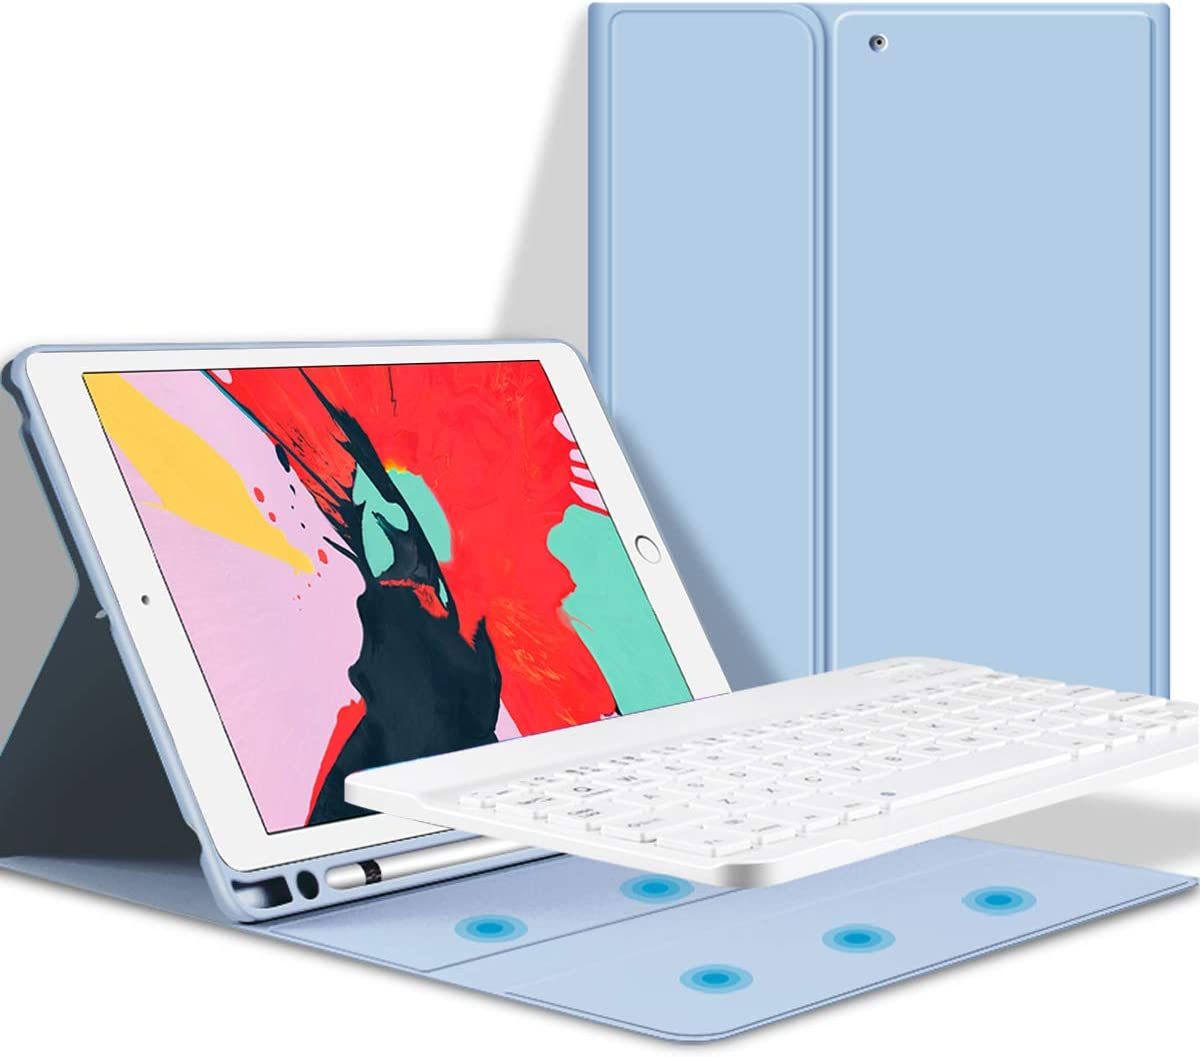 KenKe Keyboard Case for iPad 10.2, iPad 7th Generation 2019 iPad 8th Generation 2020 case with Pencil Holder Detachable Wireless Bluetooth Keyboard Cover for iPad 7th / 8th Gen 10.2 inch-(White ice)